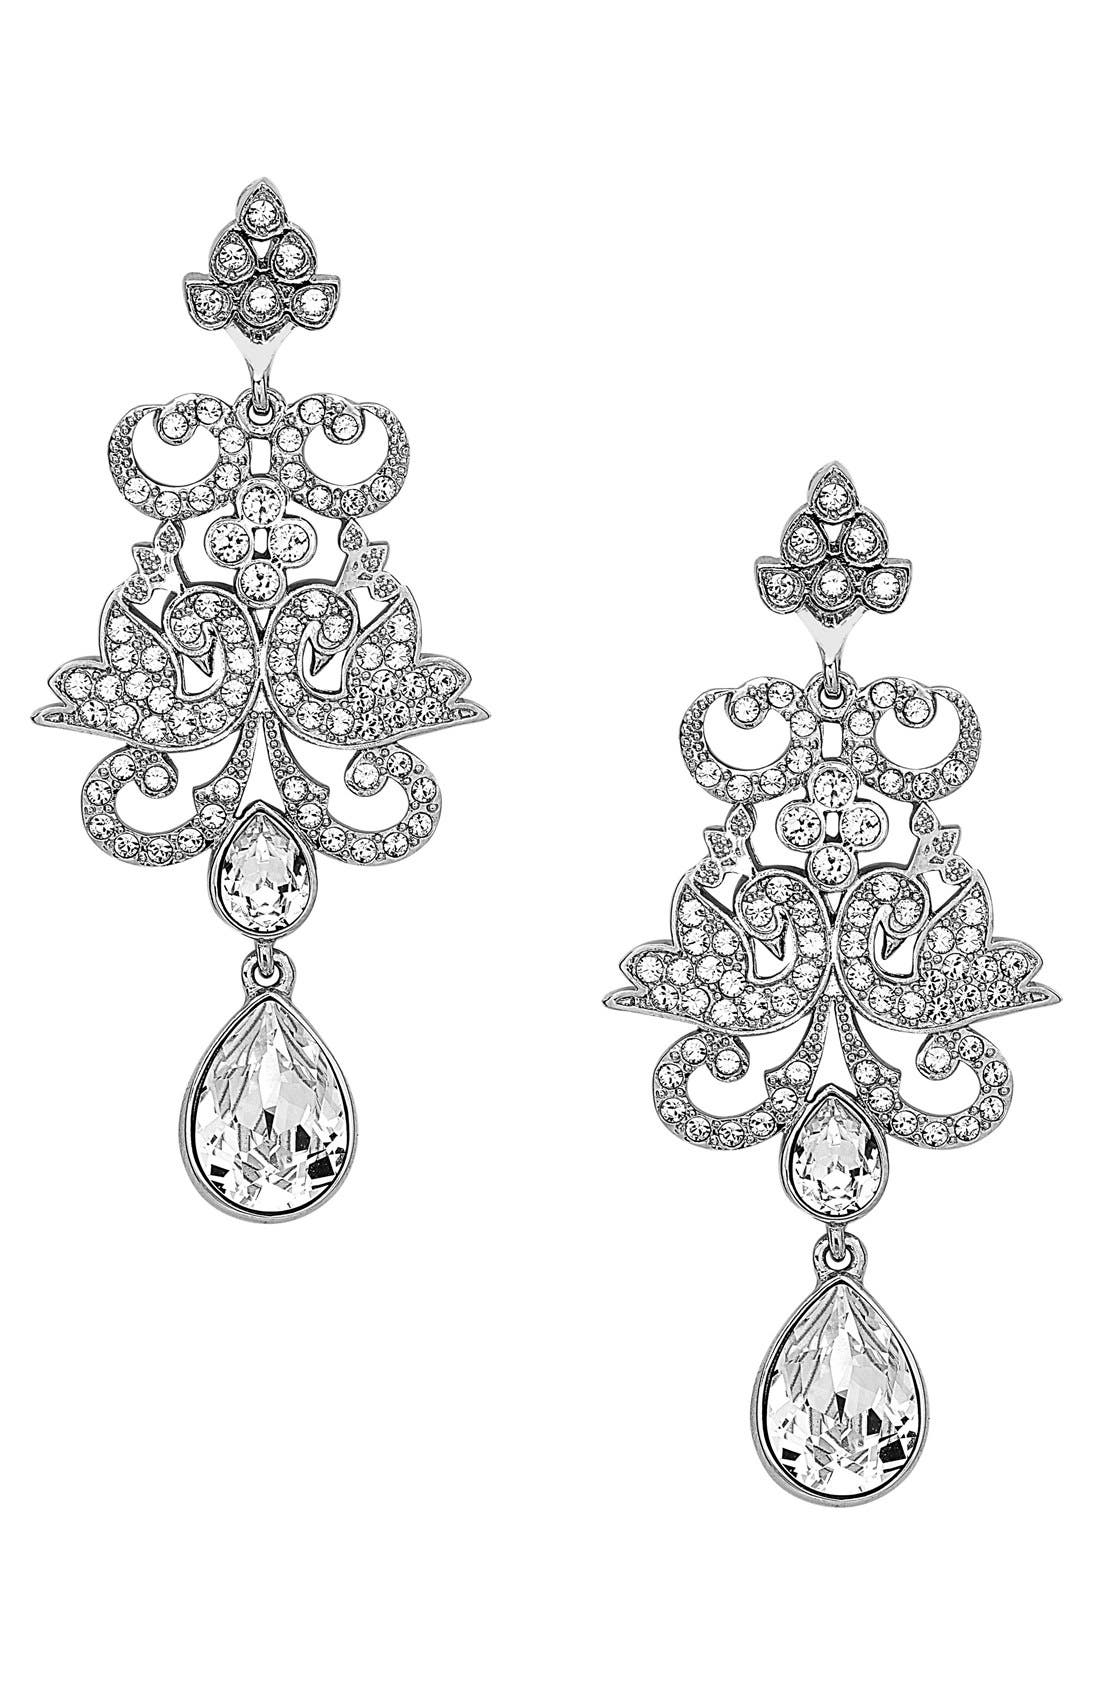 Crystal Chandelier Earrings,                             Main thumbnail 1, color,